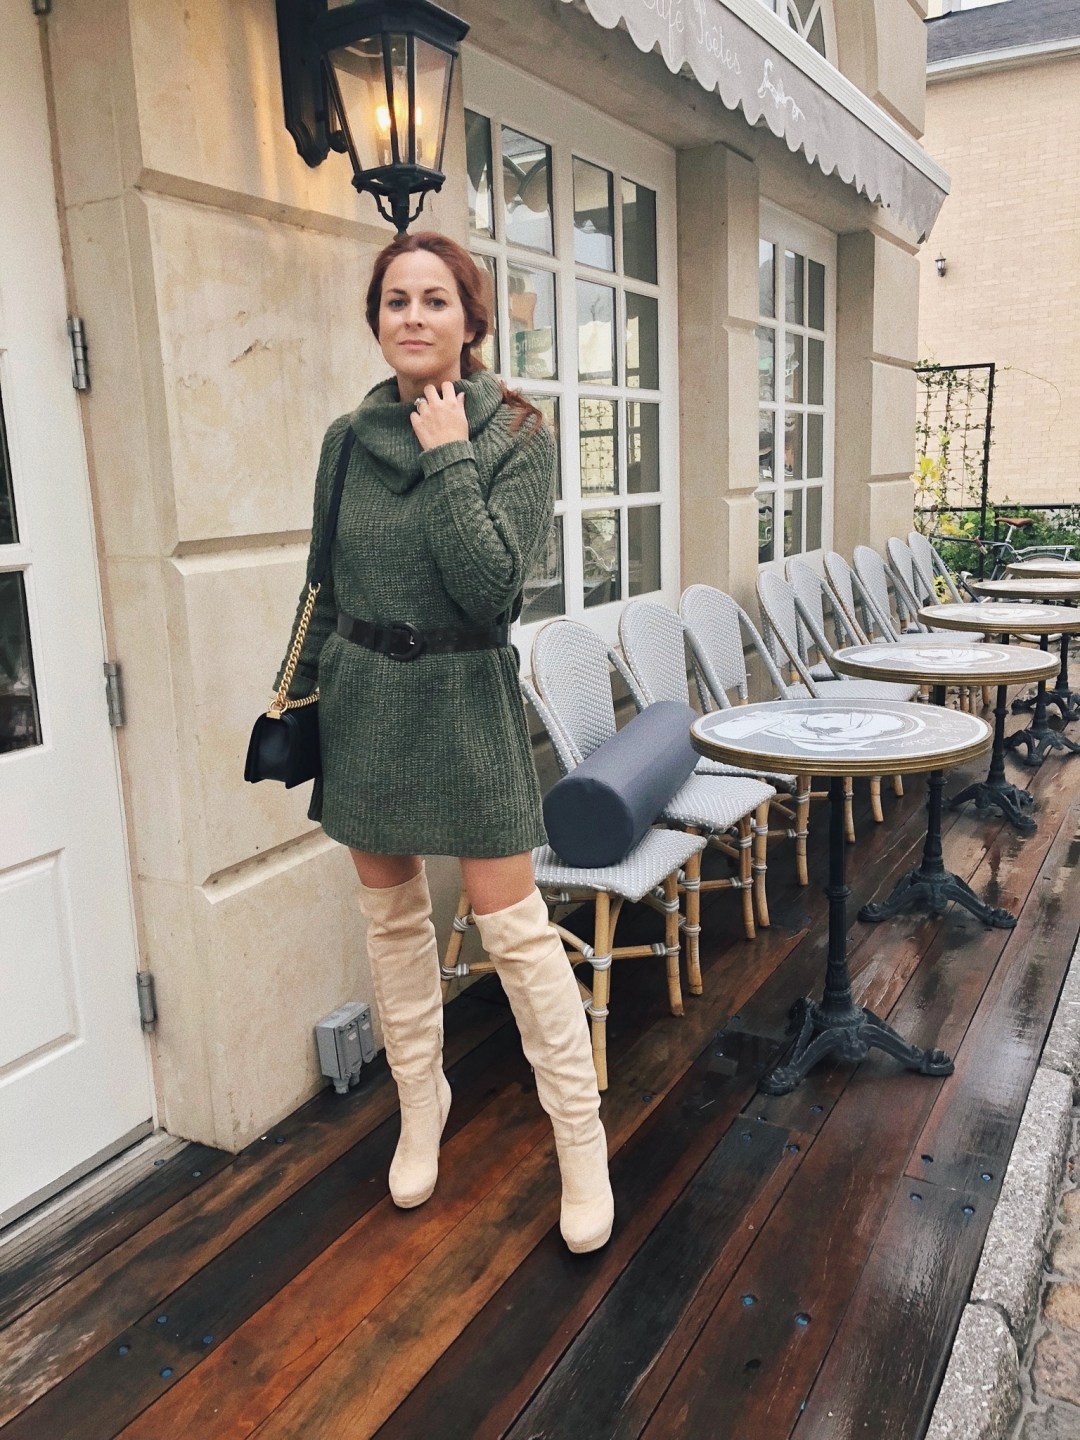 styling with a belt, sweater dresses belted, over the knee boot ideas, cream suede boots, black handbags with gold chains